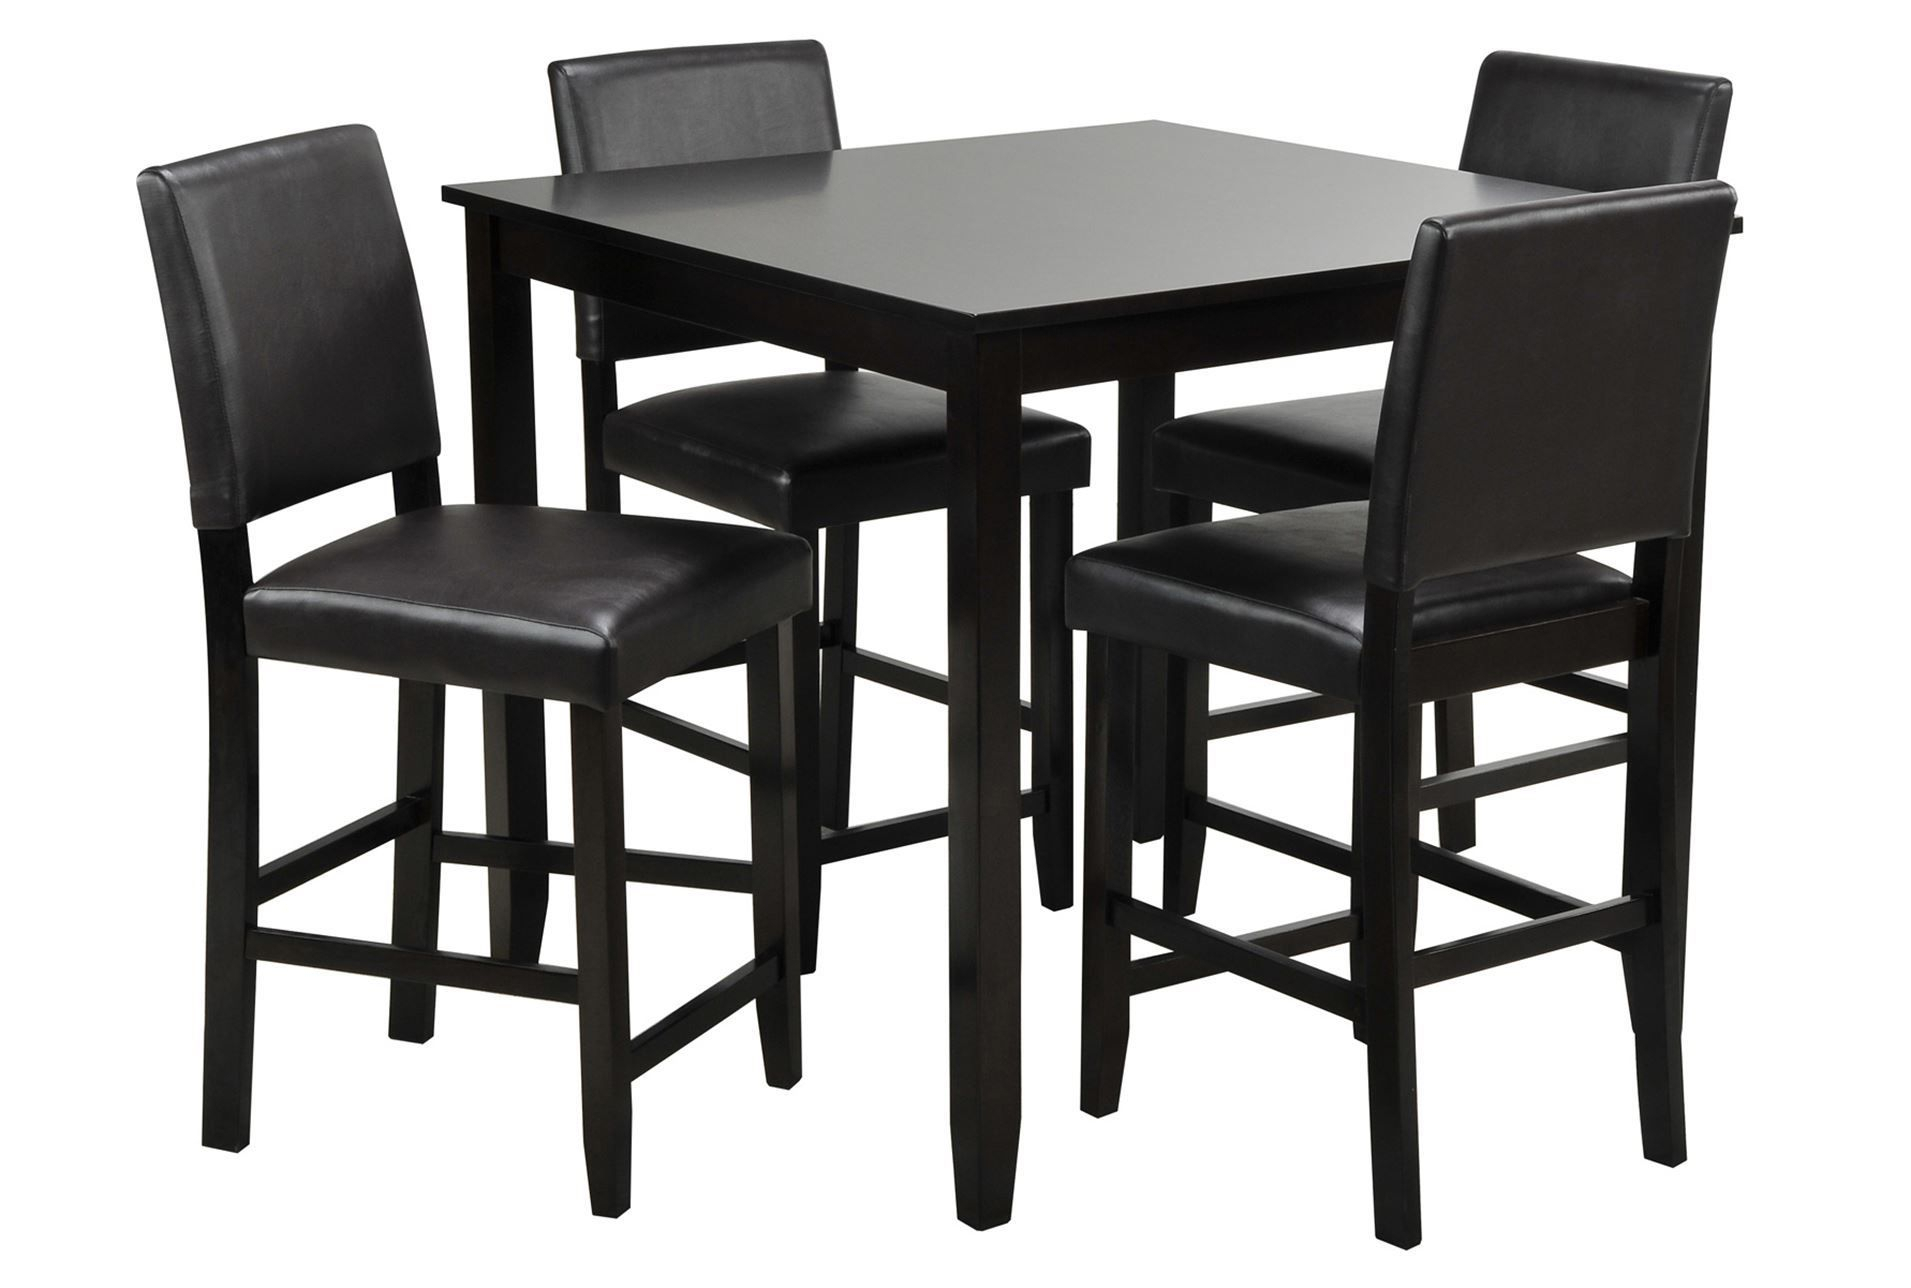 Jarrod 5 Piece Counter Set | Home – | Counter, Home Decor, Furniture Within Most Up To Date Jarrod 5 Piece Dining Sets (Photo 6 of 20)